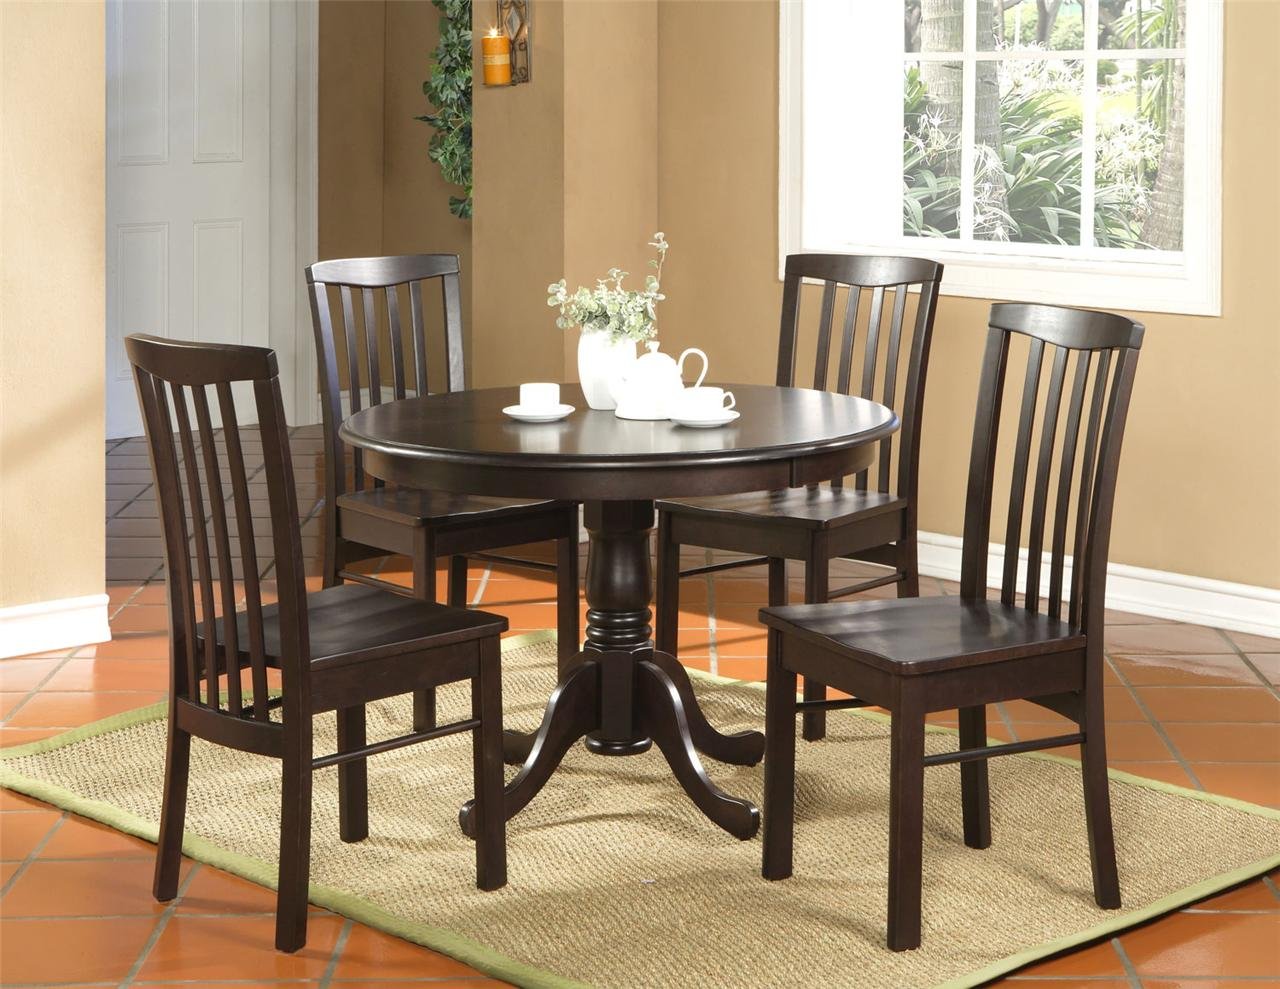 5pc round kitchen dinette set table and 4 chairs walnut ebay for Kitchen set table and chairs